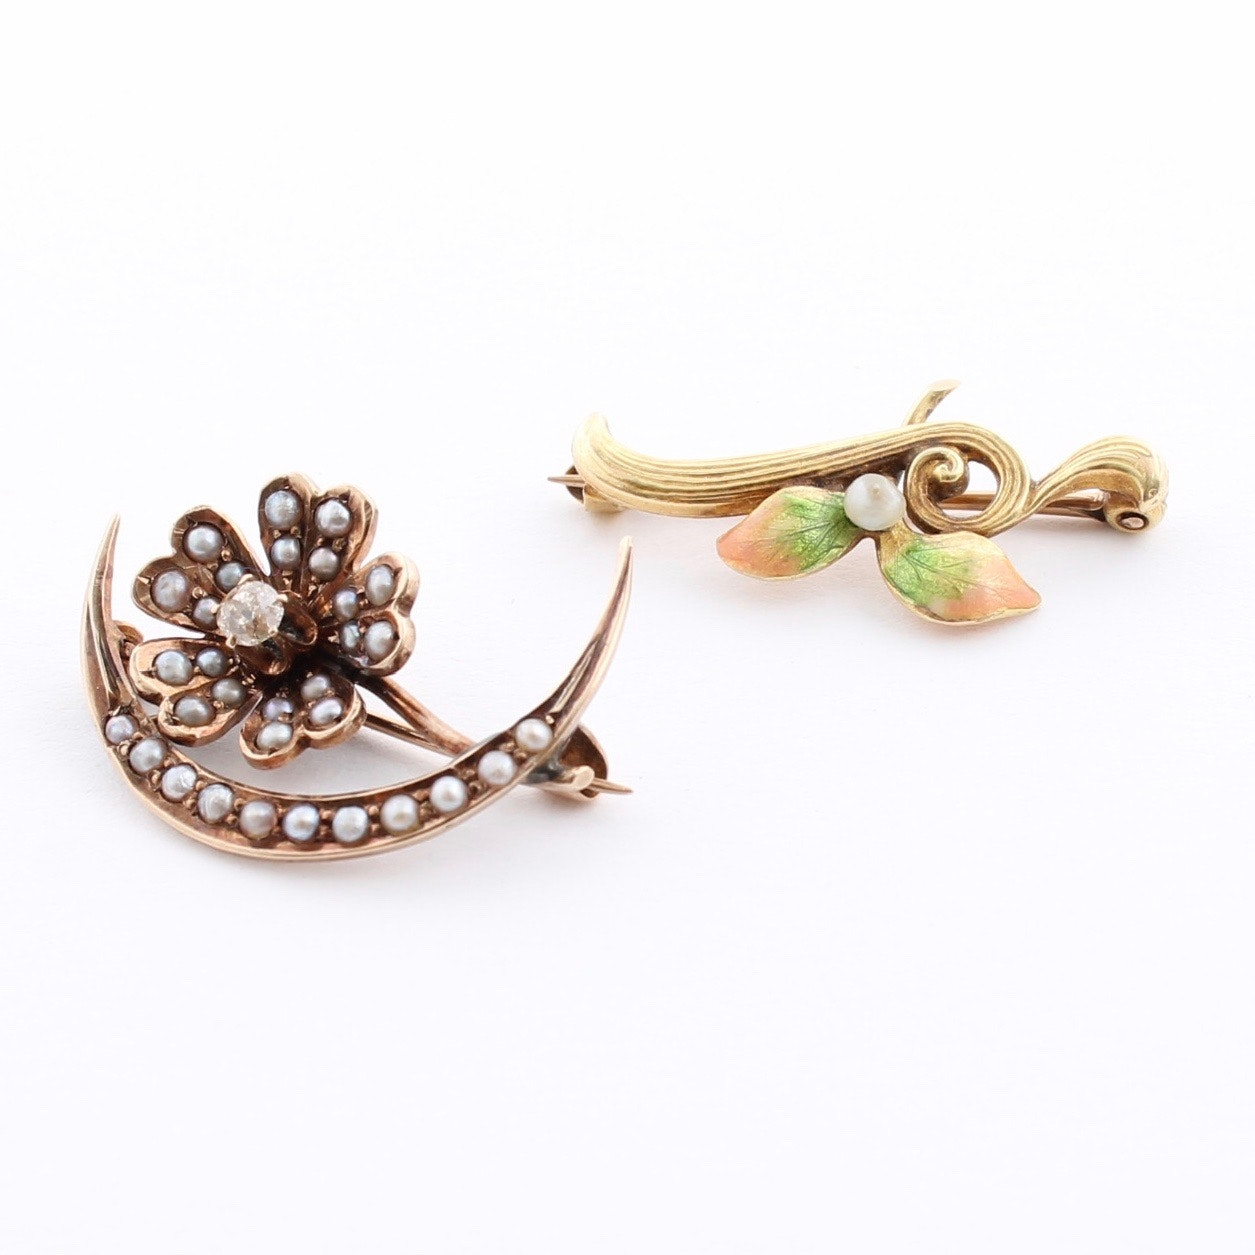 Pair of 14K Yellow Gold Brooches